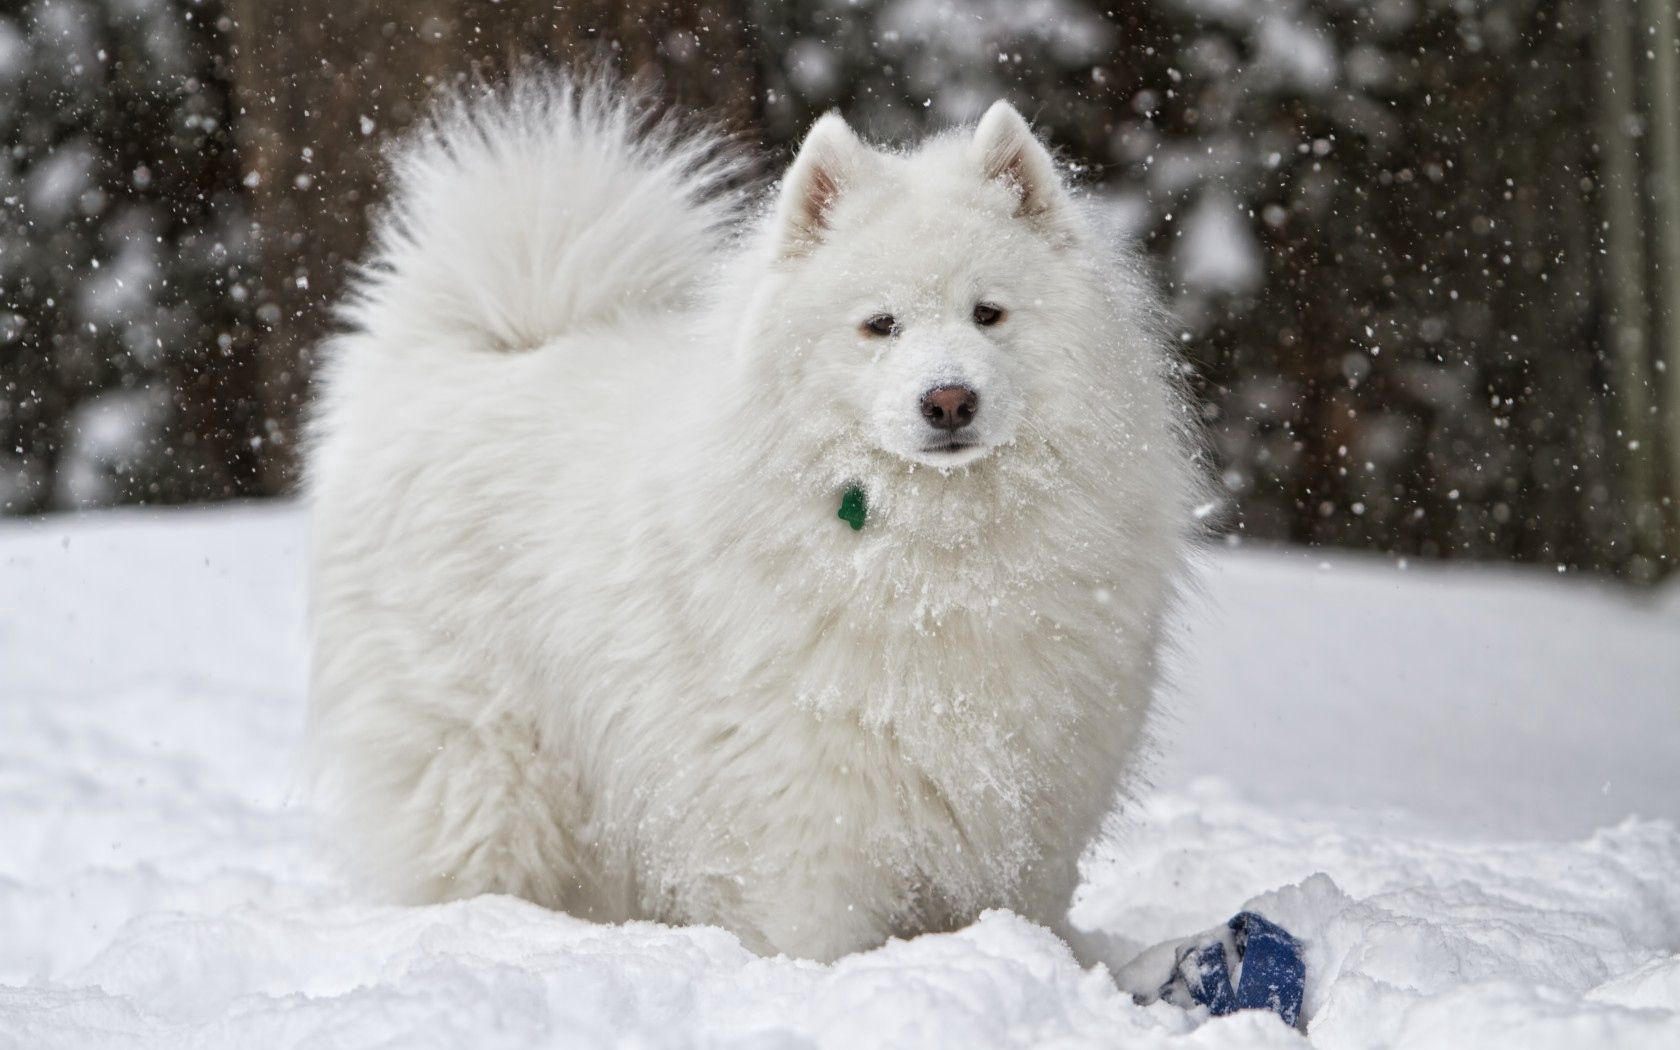 149201 download wallpaper Animals, Dog, Snow, Winter screensavers and pictures for free